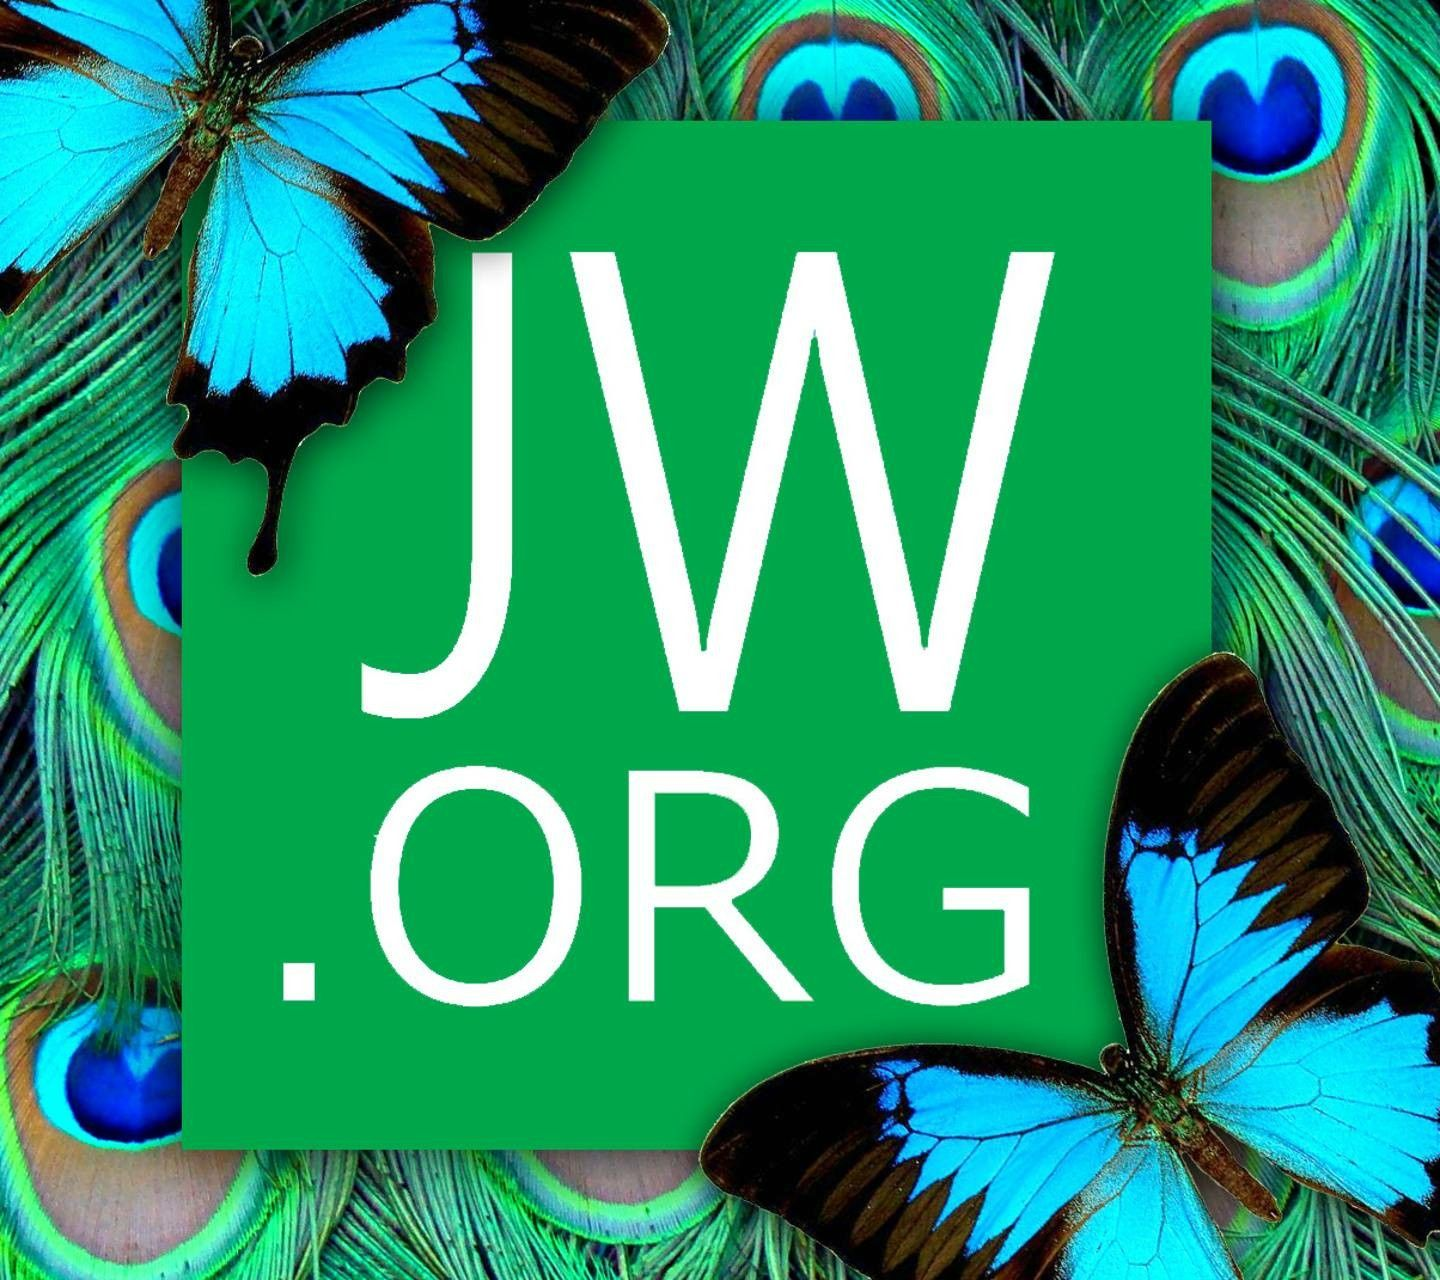 Jw backgrounds Jworg Backgrounds Quotes and Memes Artwork 1440x1280